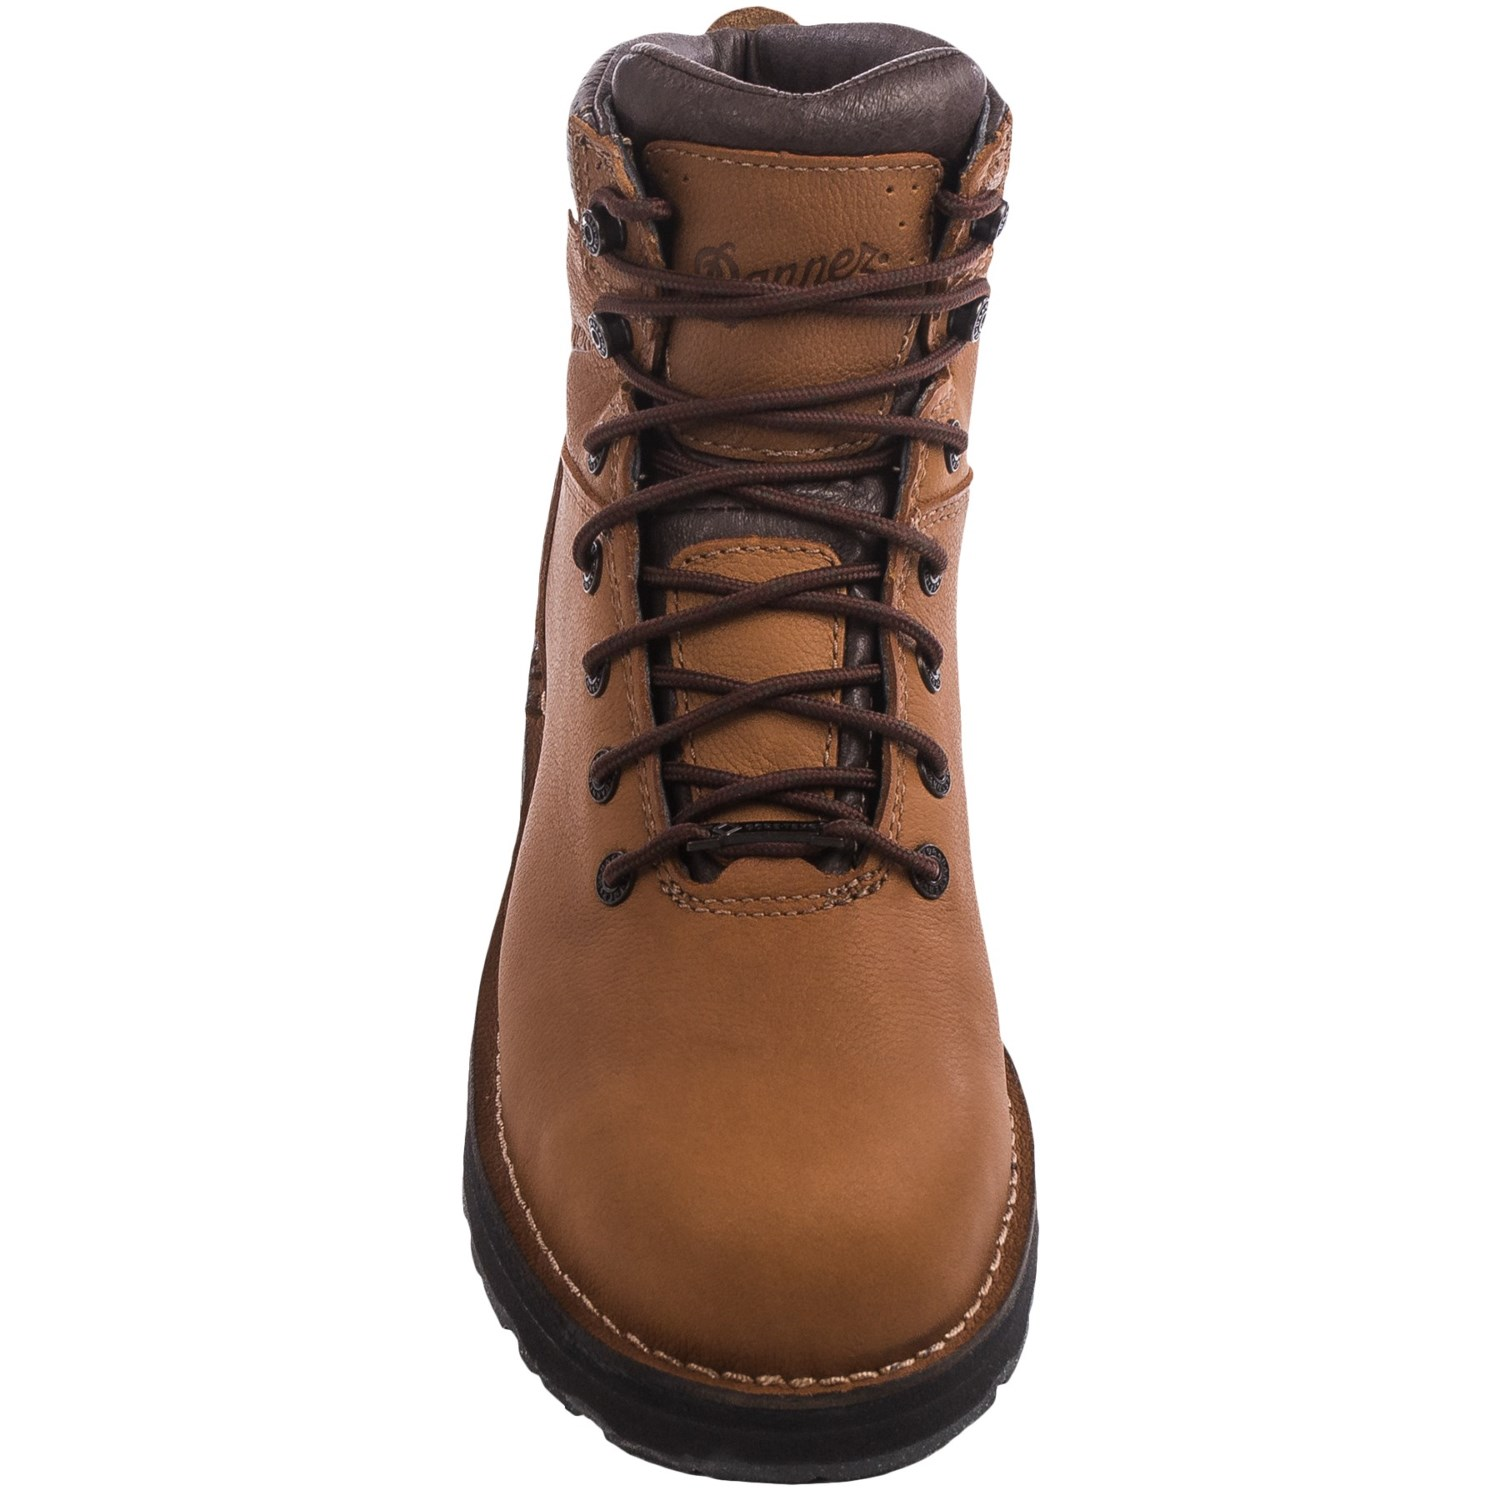 Danner Workman Gore Tex 174 6 Work Boots For Men Save 55